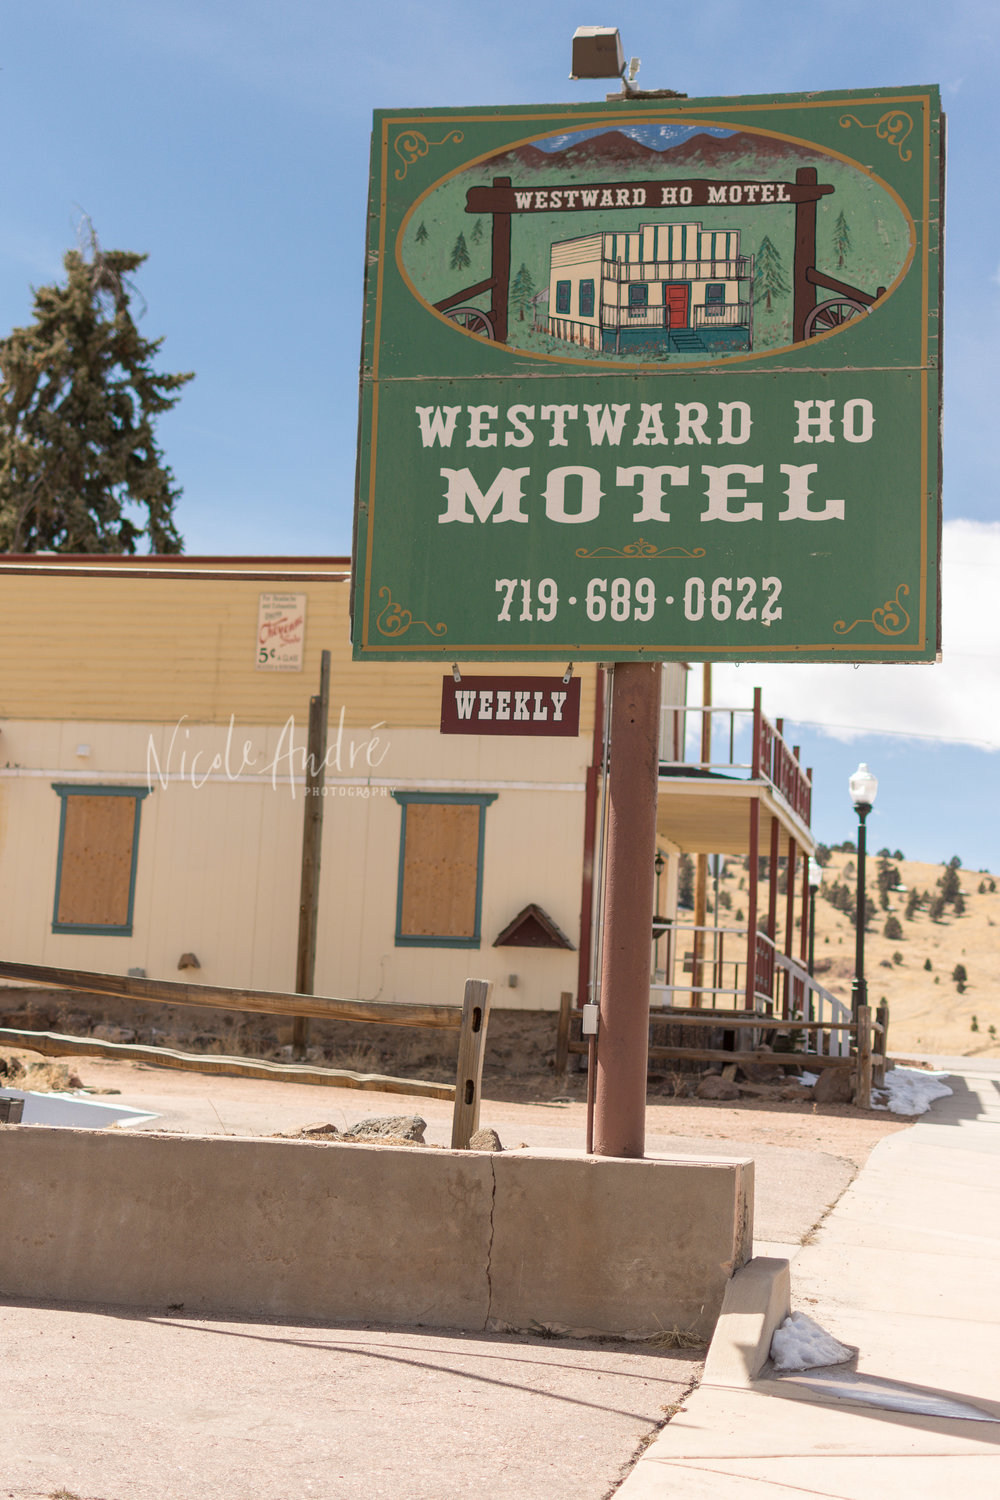 If you like ghost towns, walk past the Jail Museum to the end of the street where you will see this sign. All of the windows are boarded up, but it is still a colorful spot to check out.